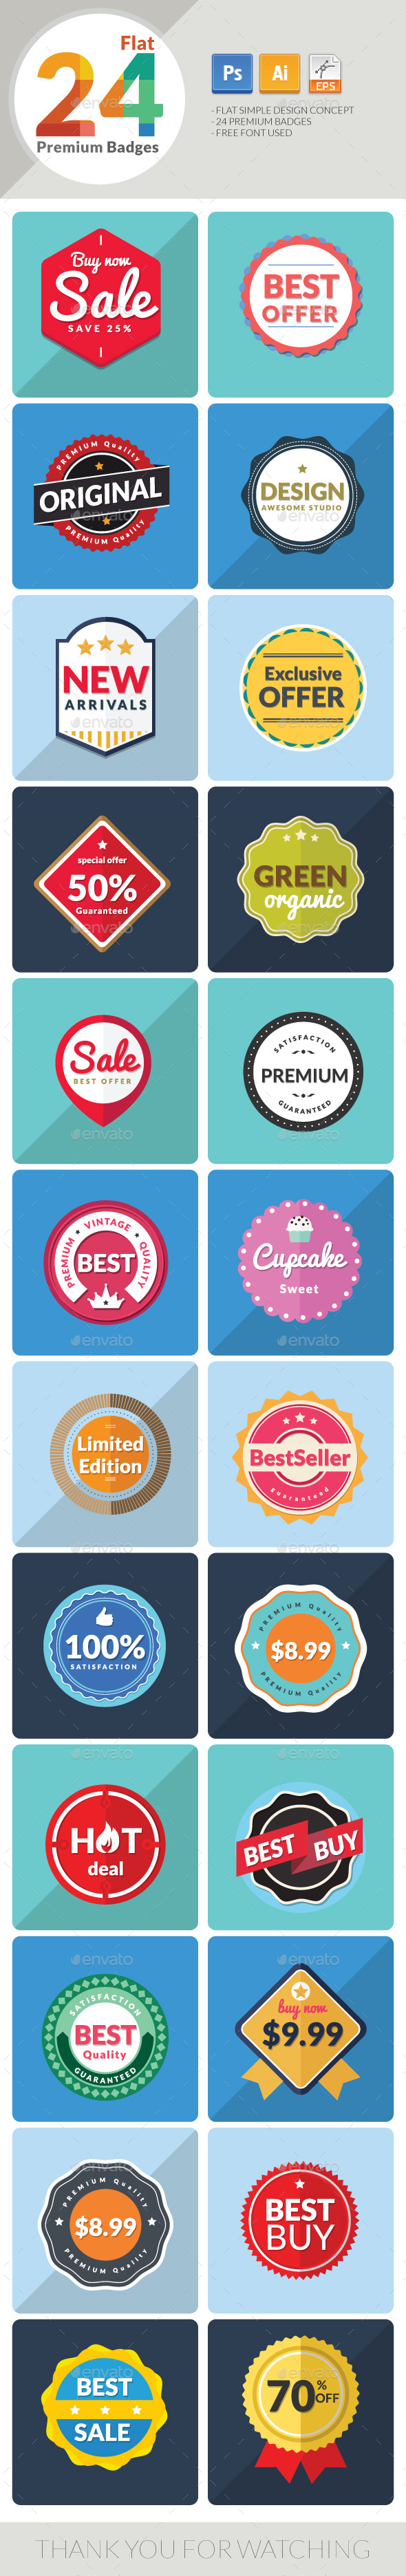 GraphicRiver 24 Flat Premium Badges 9350986